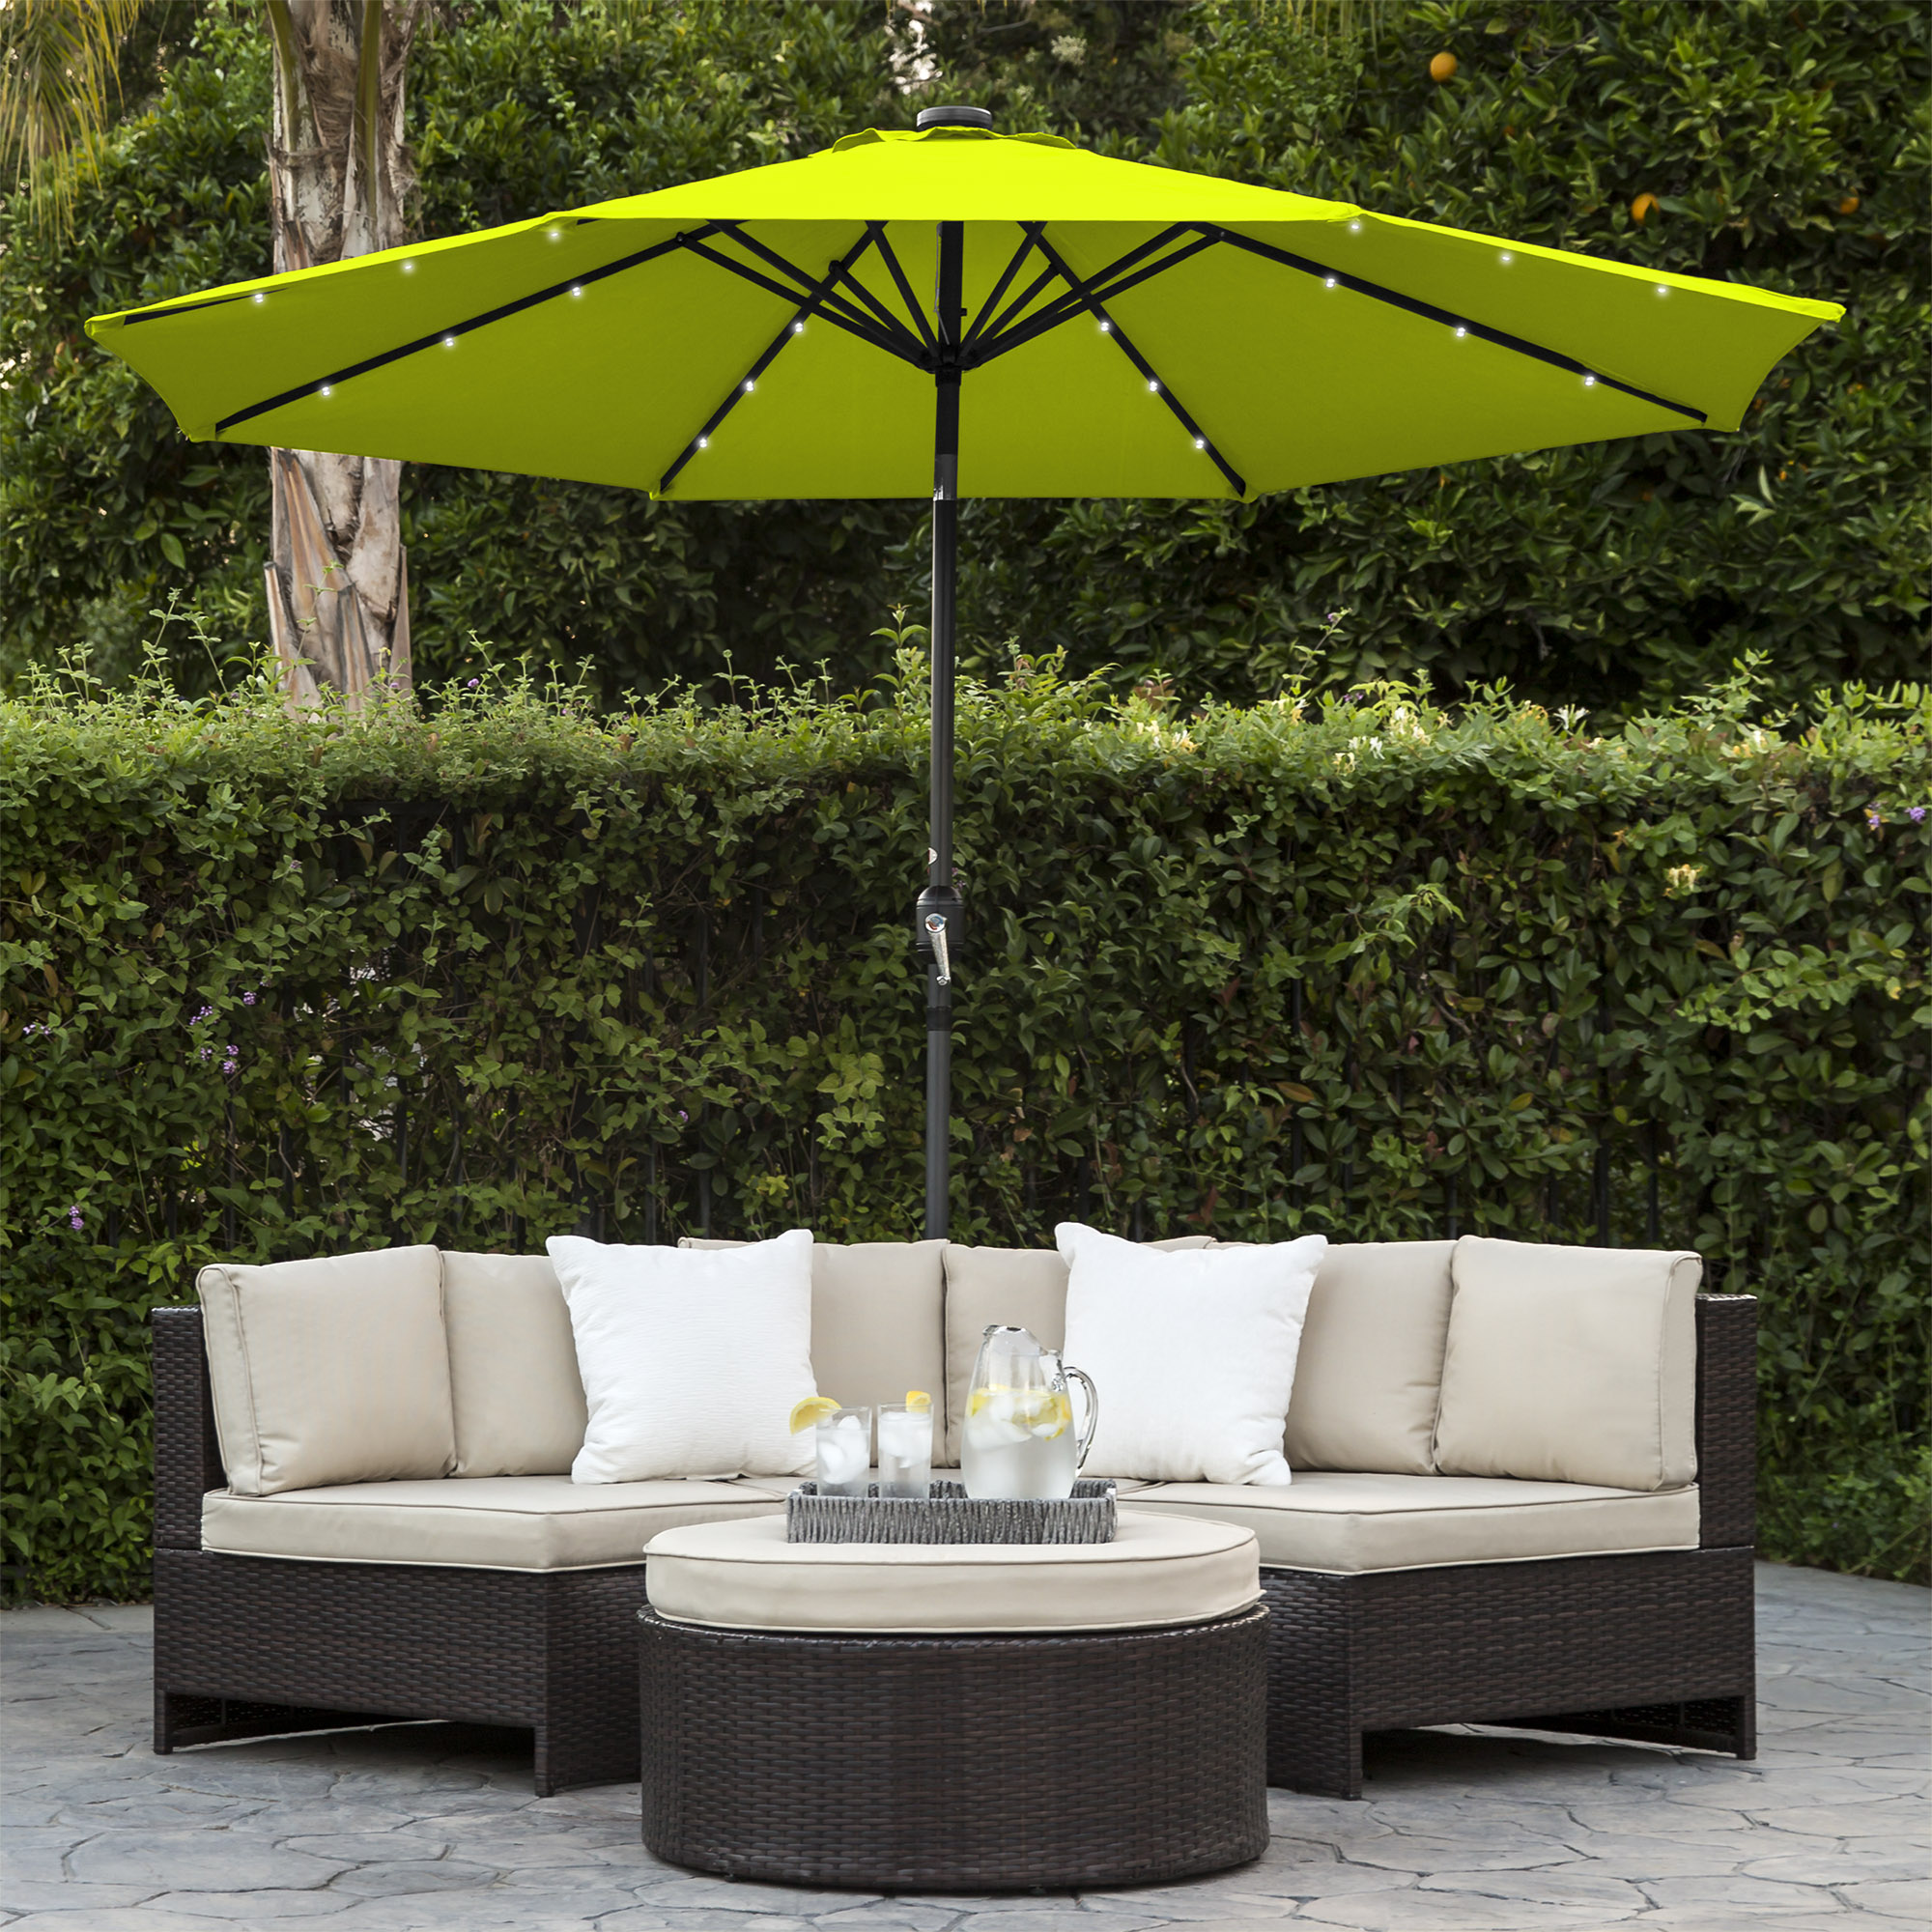 BCP-10ft-Solar-LED-Lighted-Patio-Umbrella-w-Tilt-Adjustment-Fade-Resistance thumbnail 37